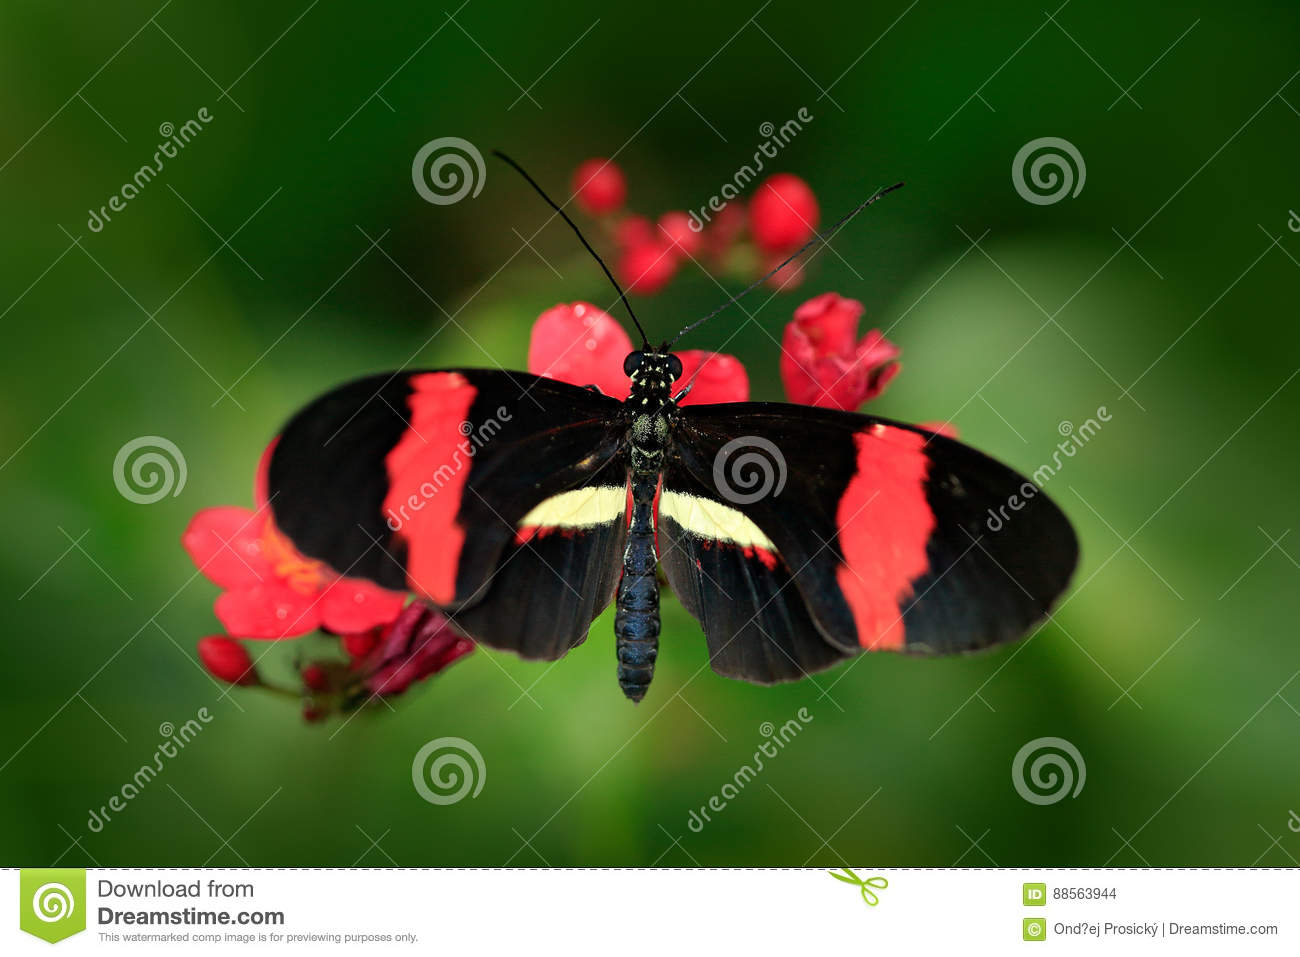 Butterfly Heliconius melpomene, in nature habitat. Nice insect from Costa Rica in the green forest. Butterfly sitting on the leave